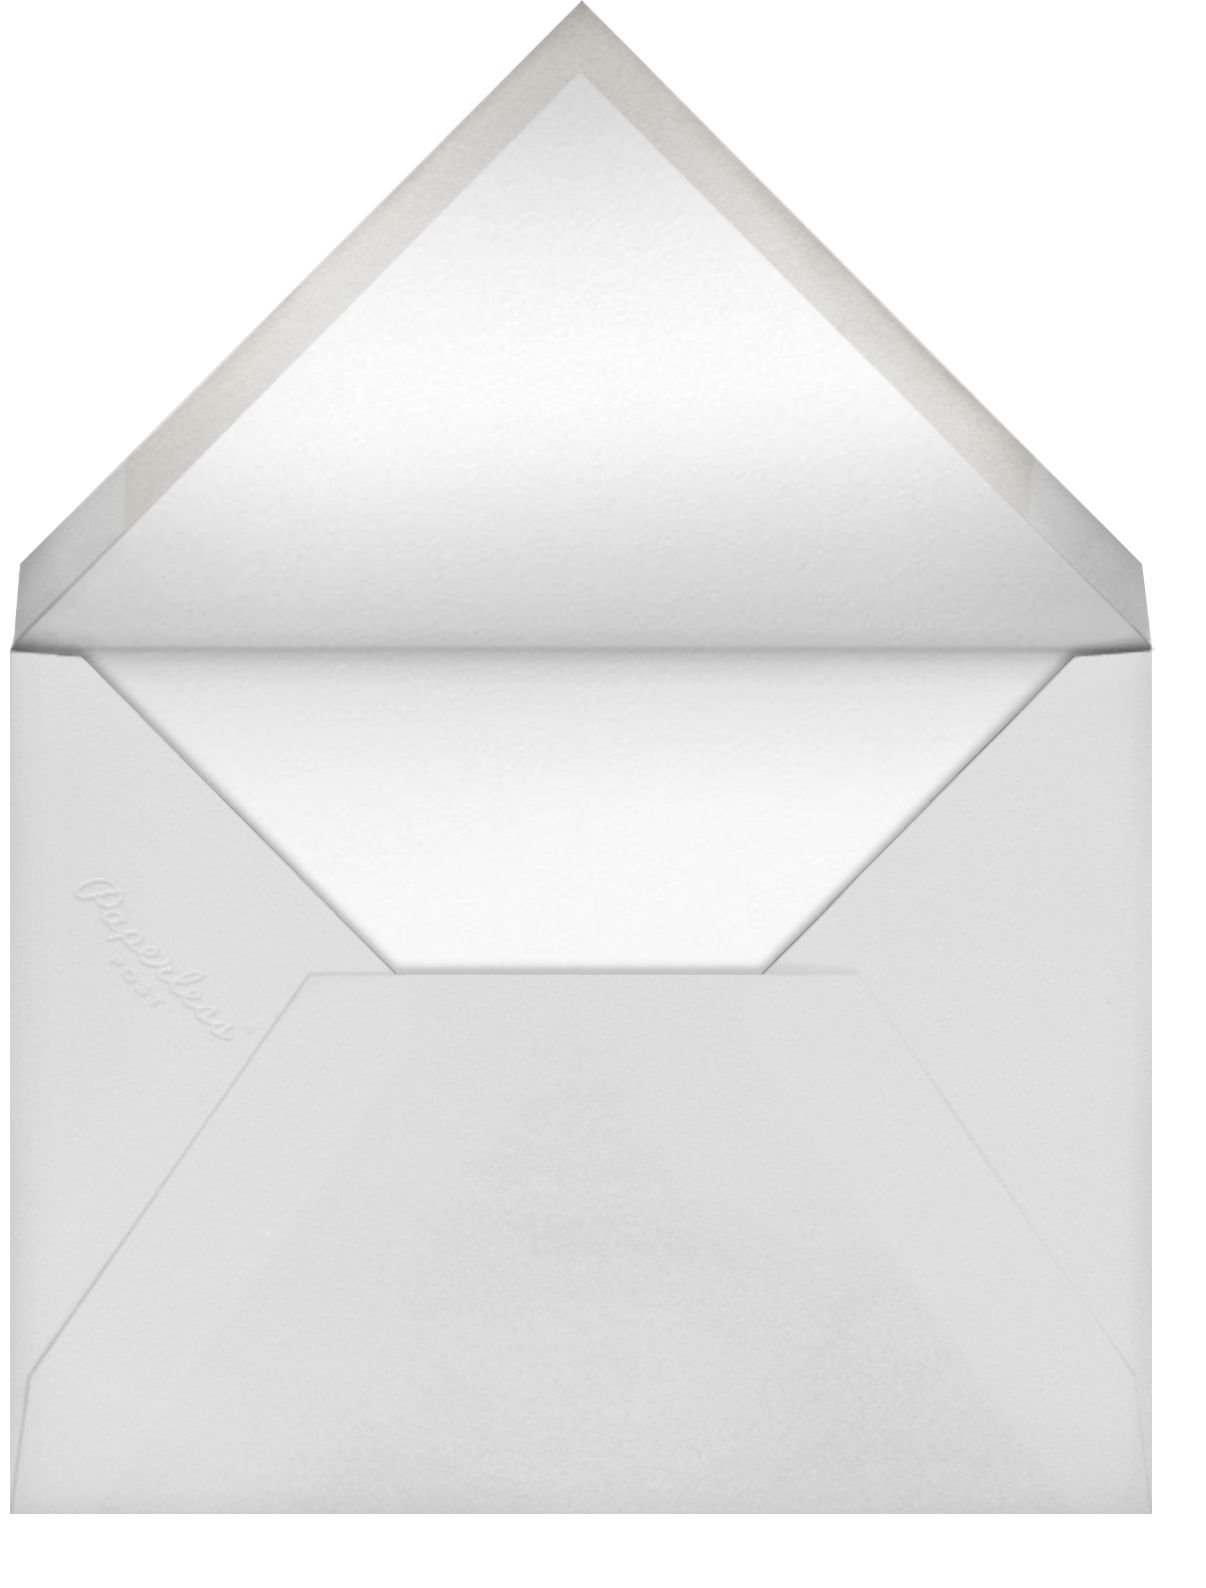 Stella and Dot - Snowflakes - Paperless Post - null - envelope back